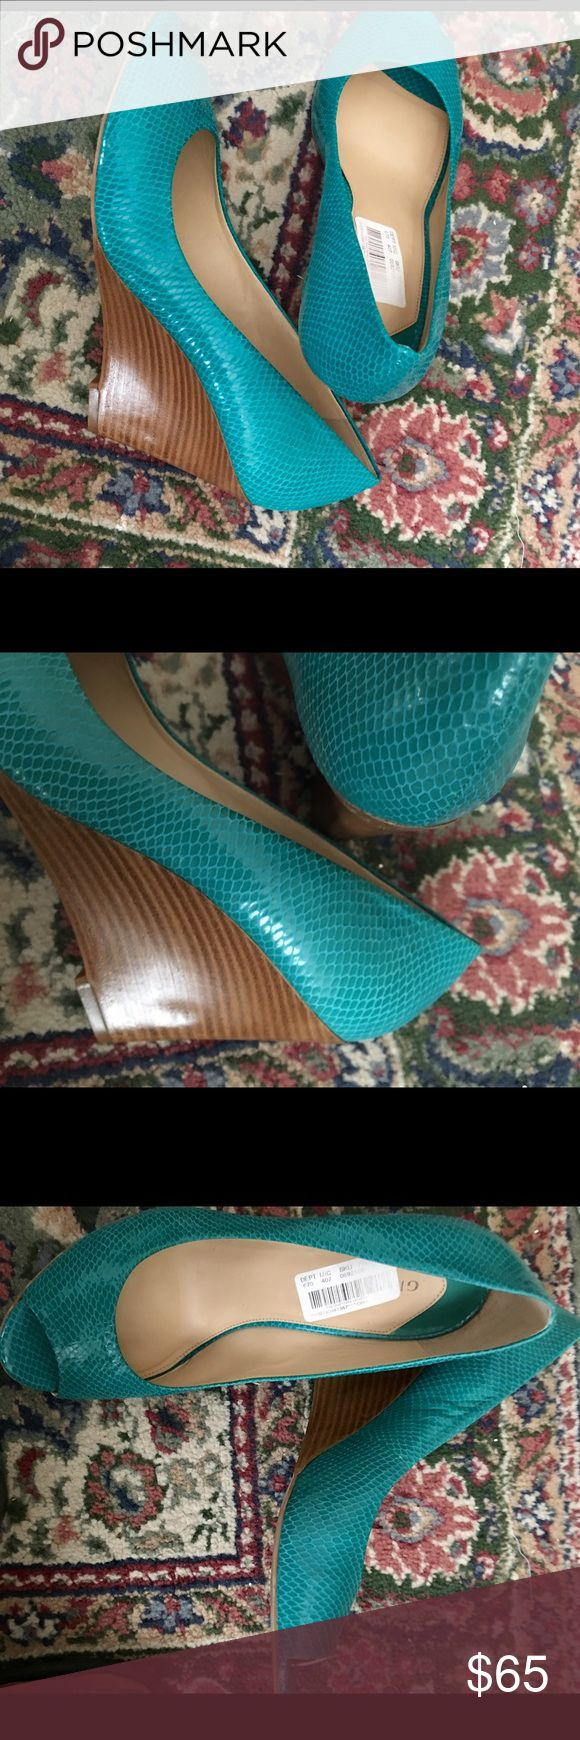 Terrific turquoise wedge heels 💙 Gorgeous wedge heels, peep toes, slip on, a beautiful accompaniment to any outfit! Gianni Bini Shoes Wedges